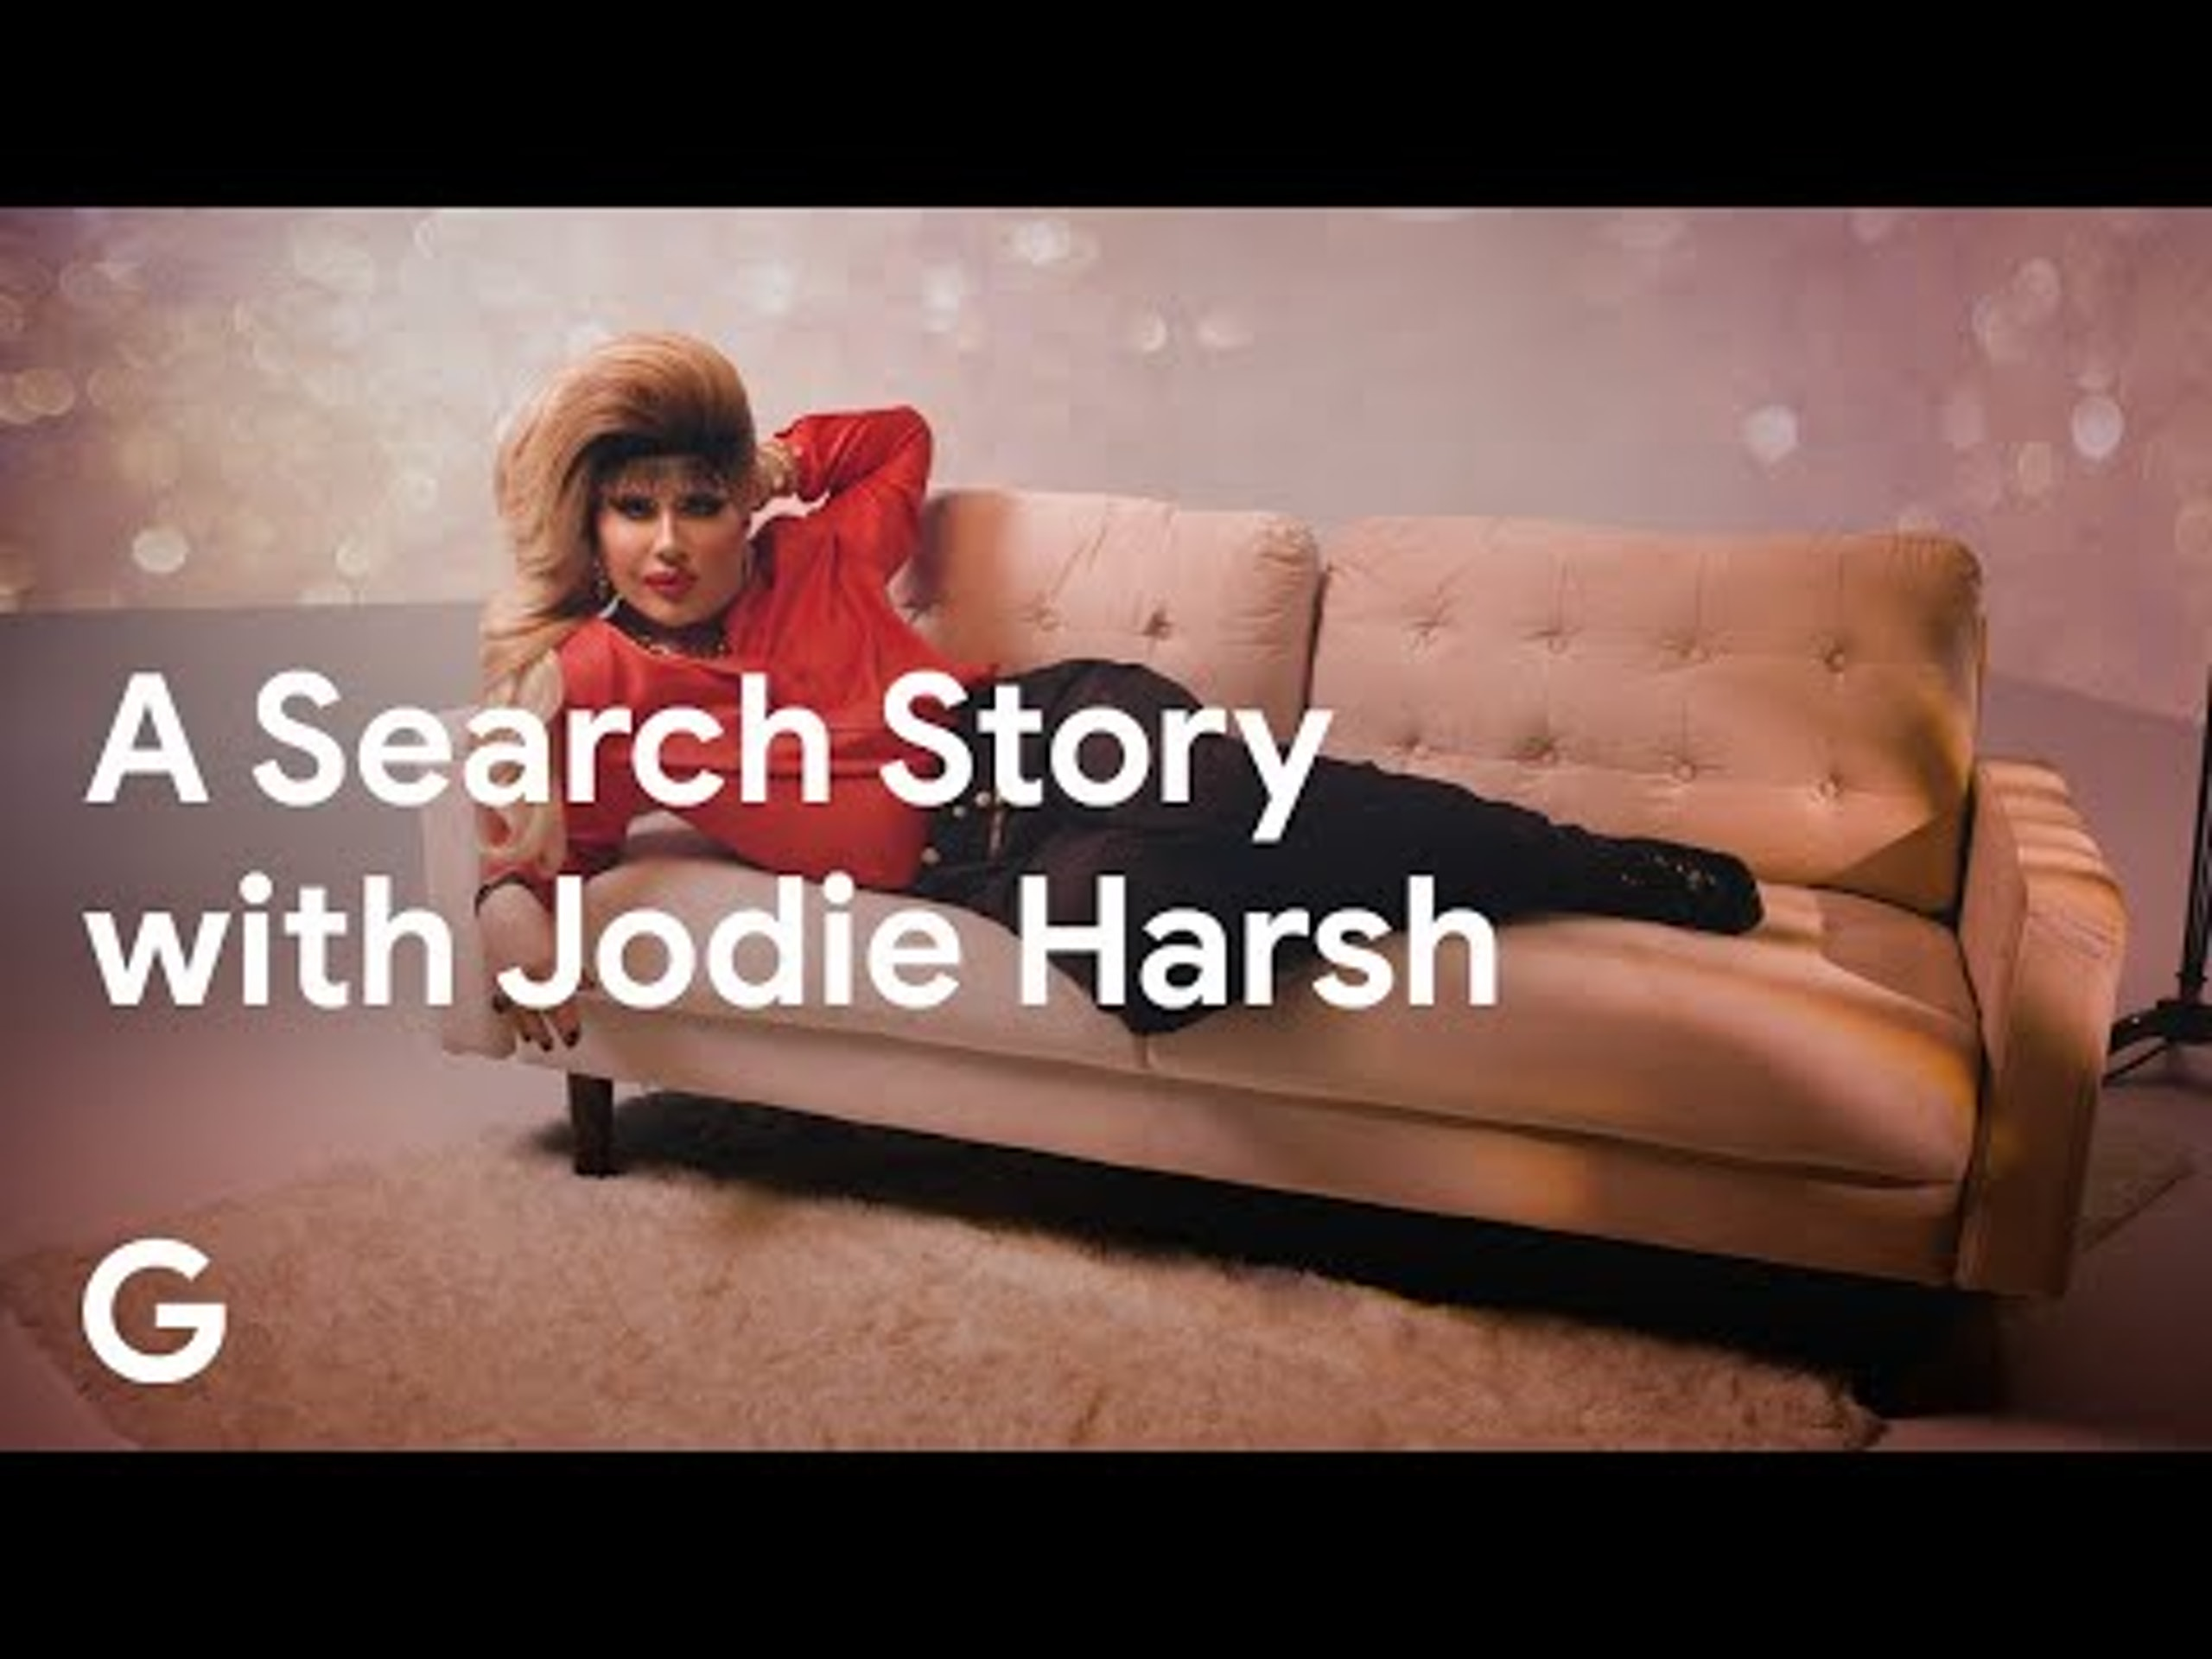 Jodie Harsh on the dance floor   A Search Story